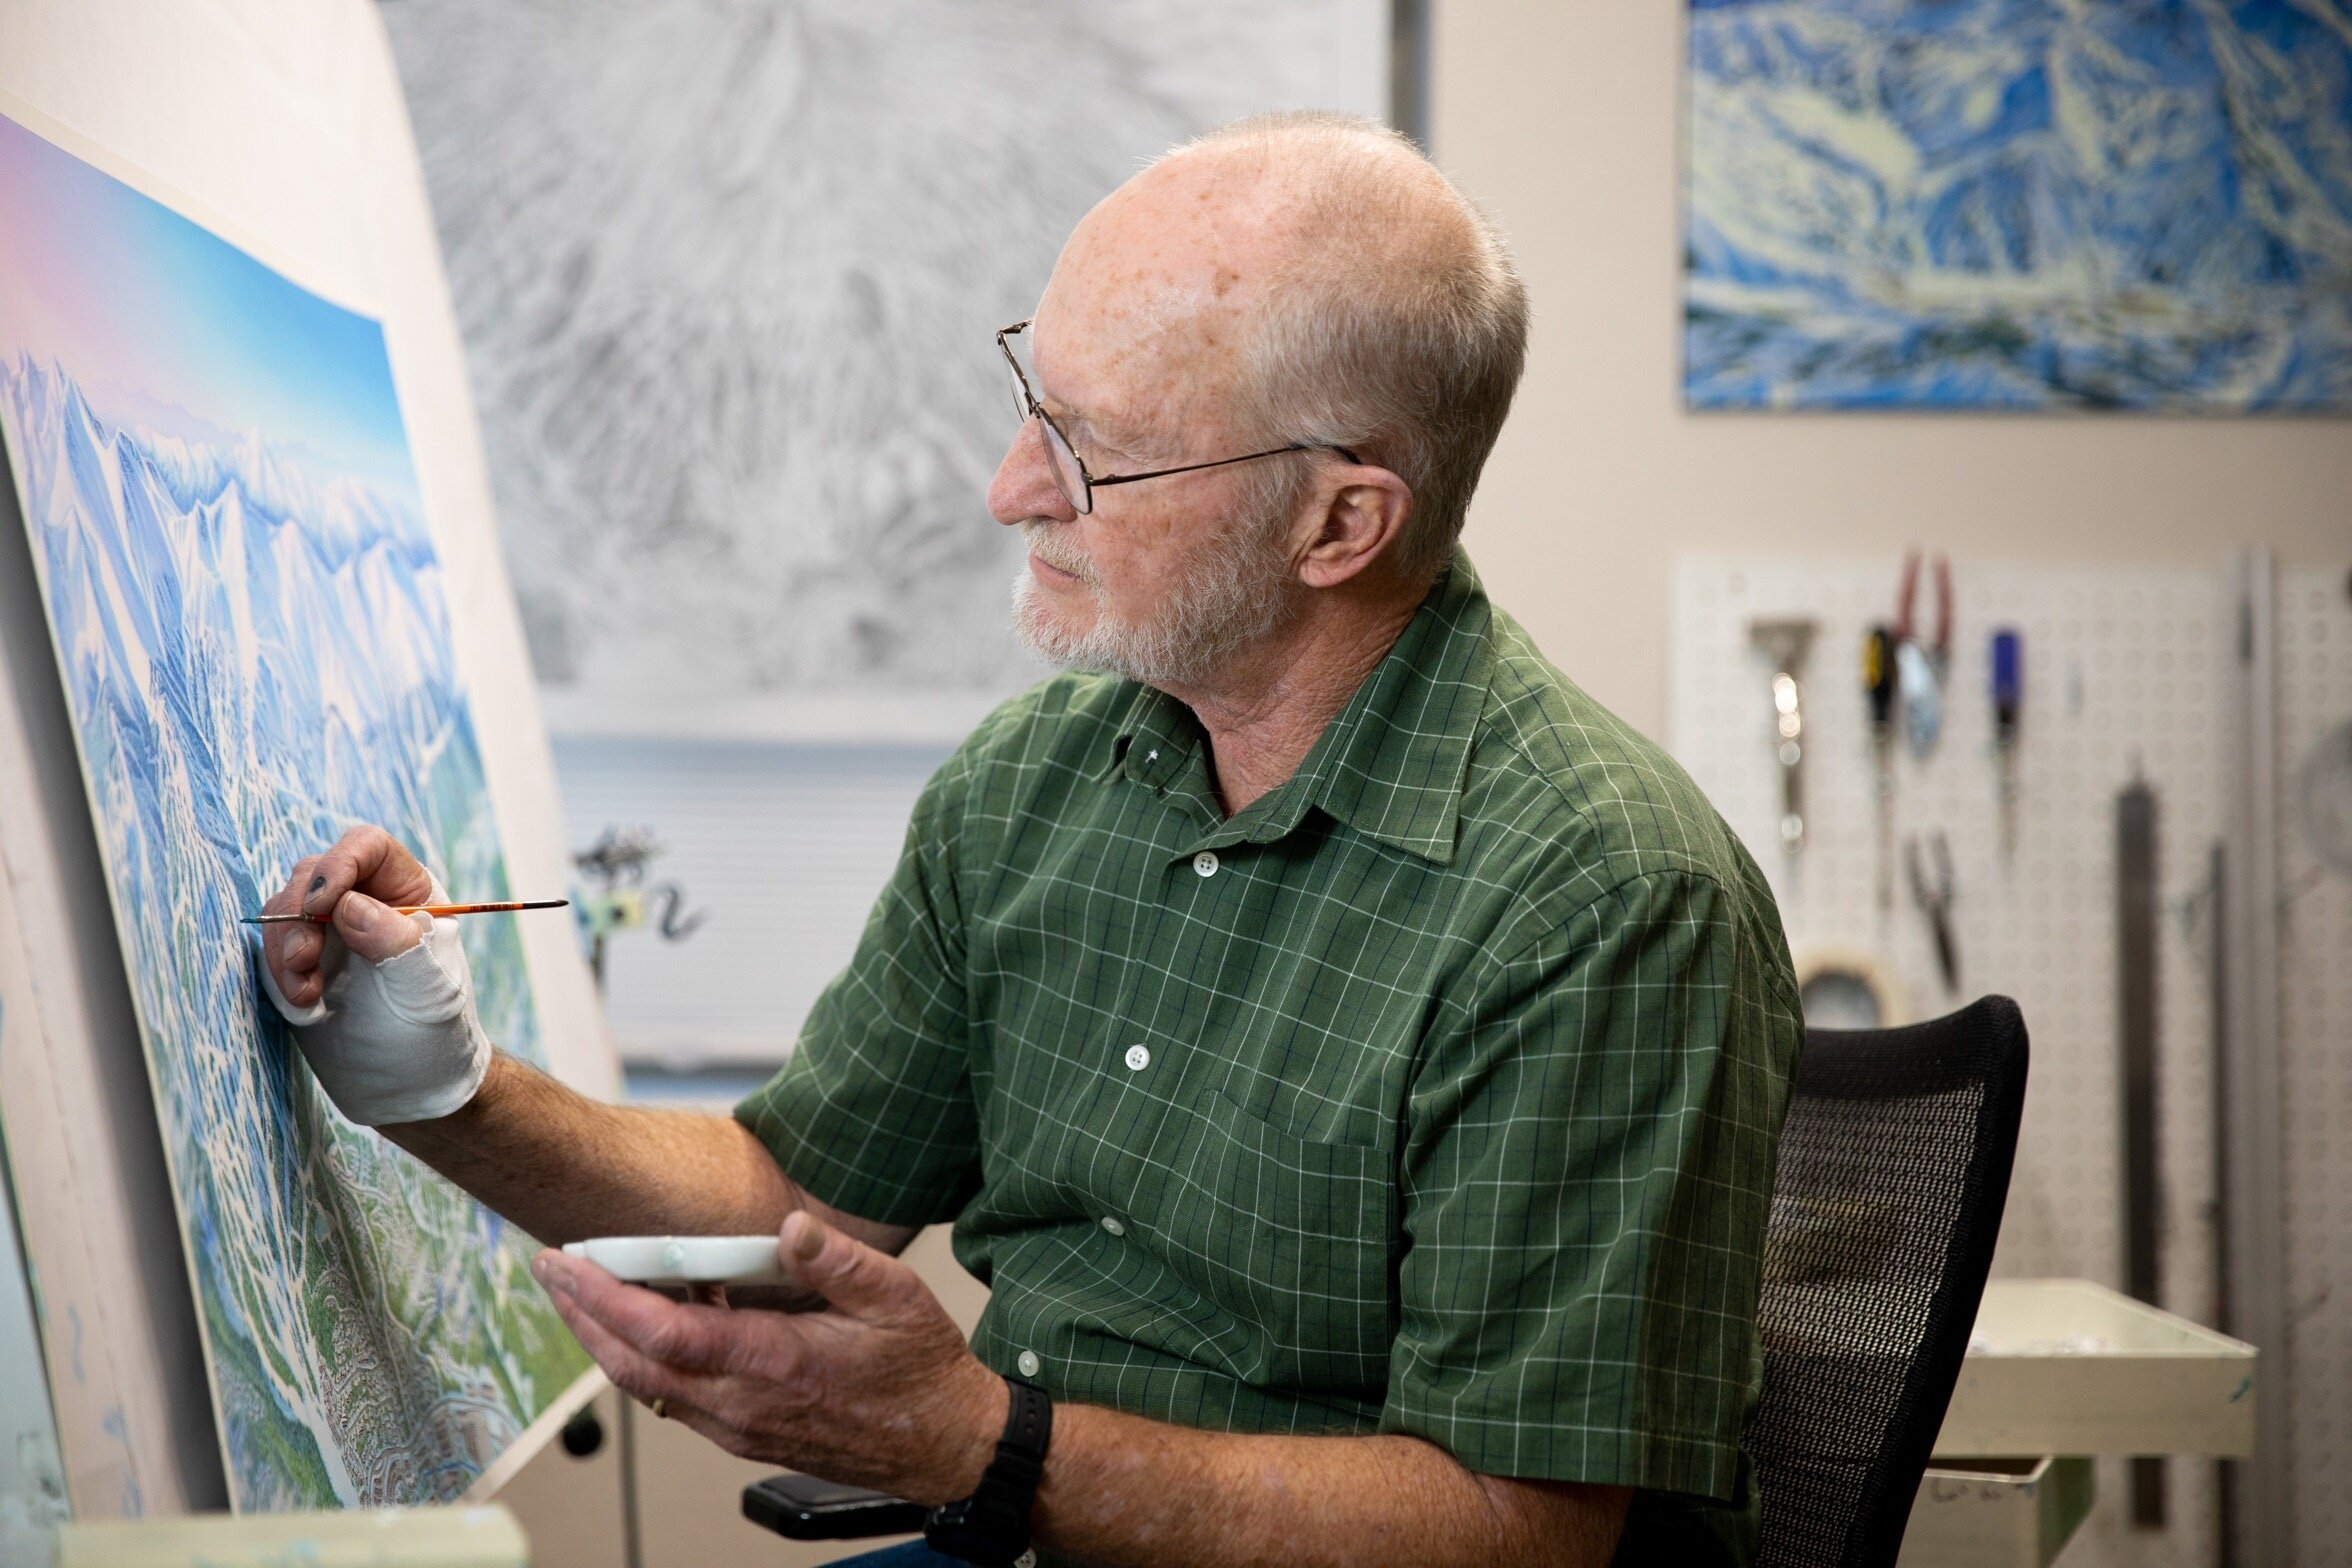 Parker, CO. - James Niehues works in his home studio in Parker, Colorado on December 17, 2018.